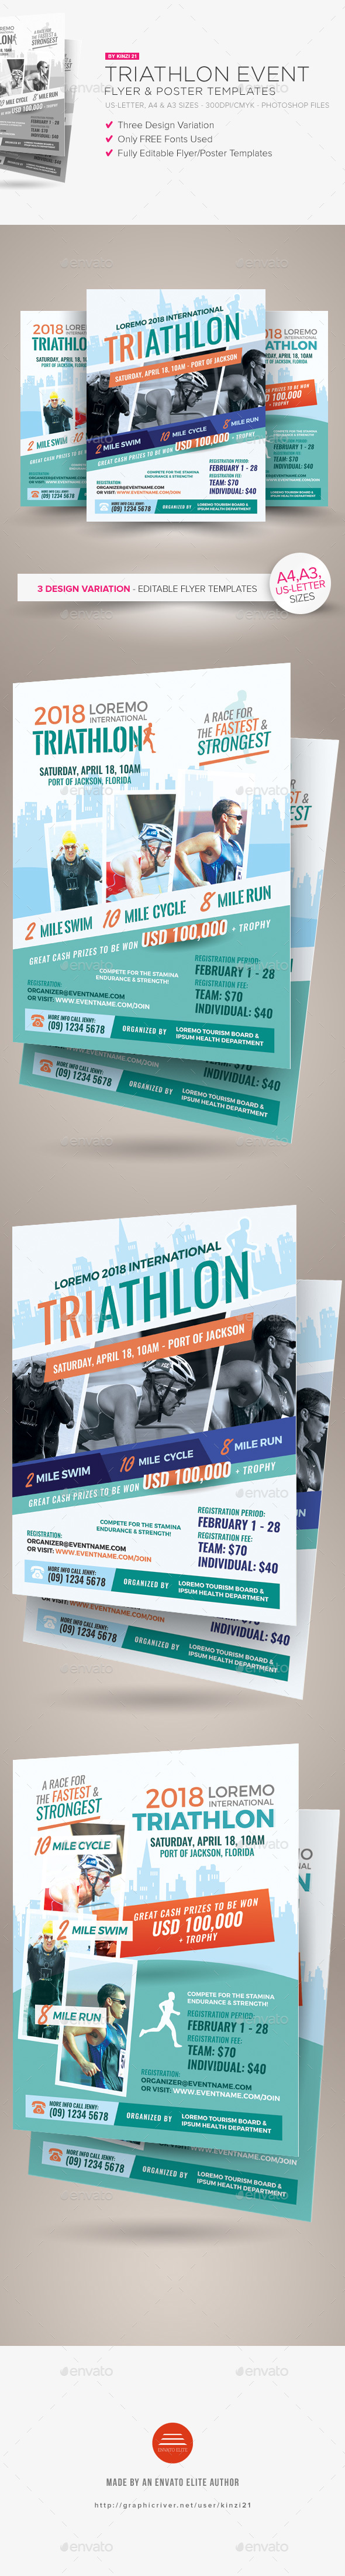 Triathlon Event Flyer and Poster Templates - Sports Events